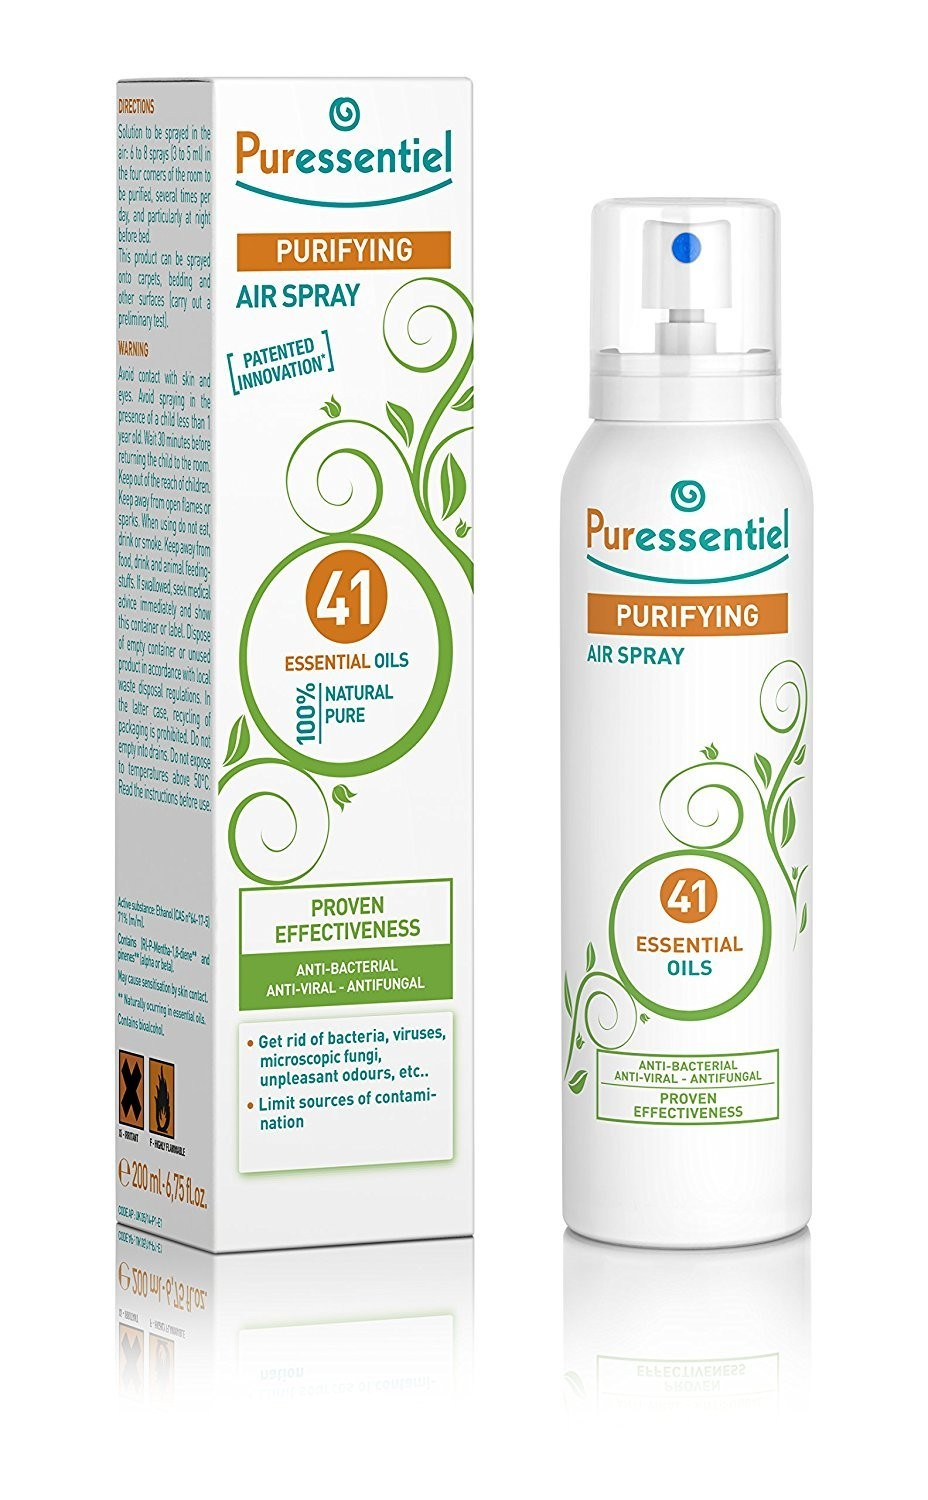 Puressentiel purifying air spray